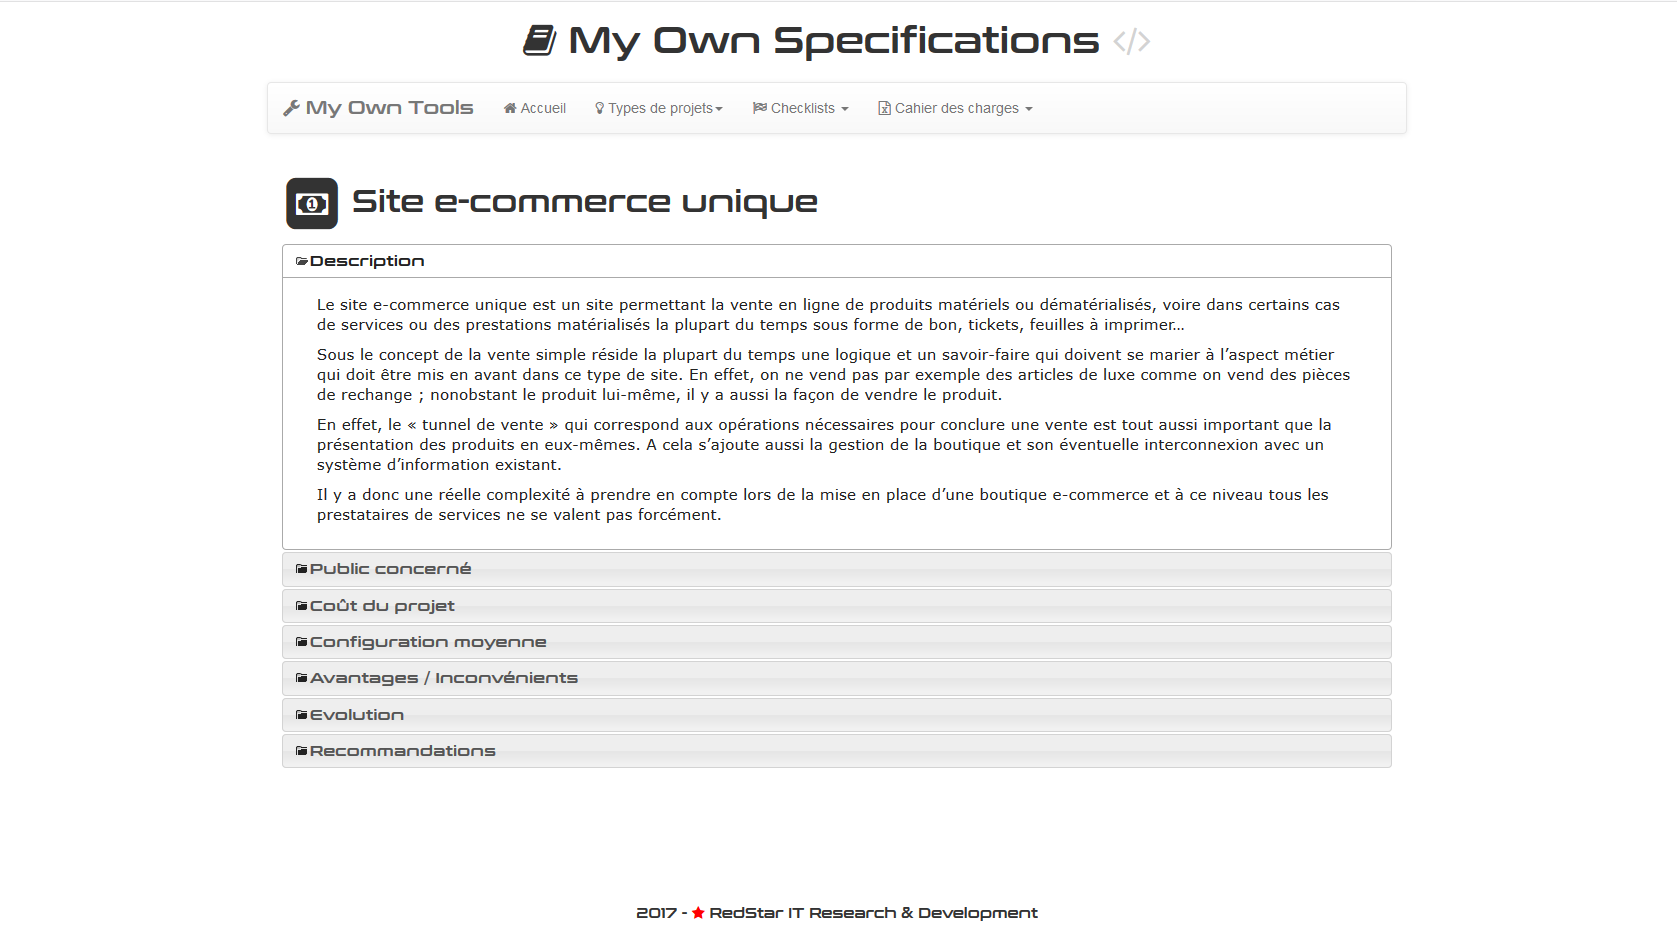 My Own Specifications #1